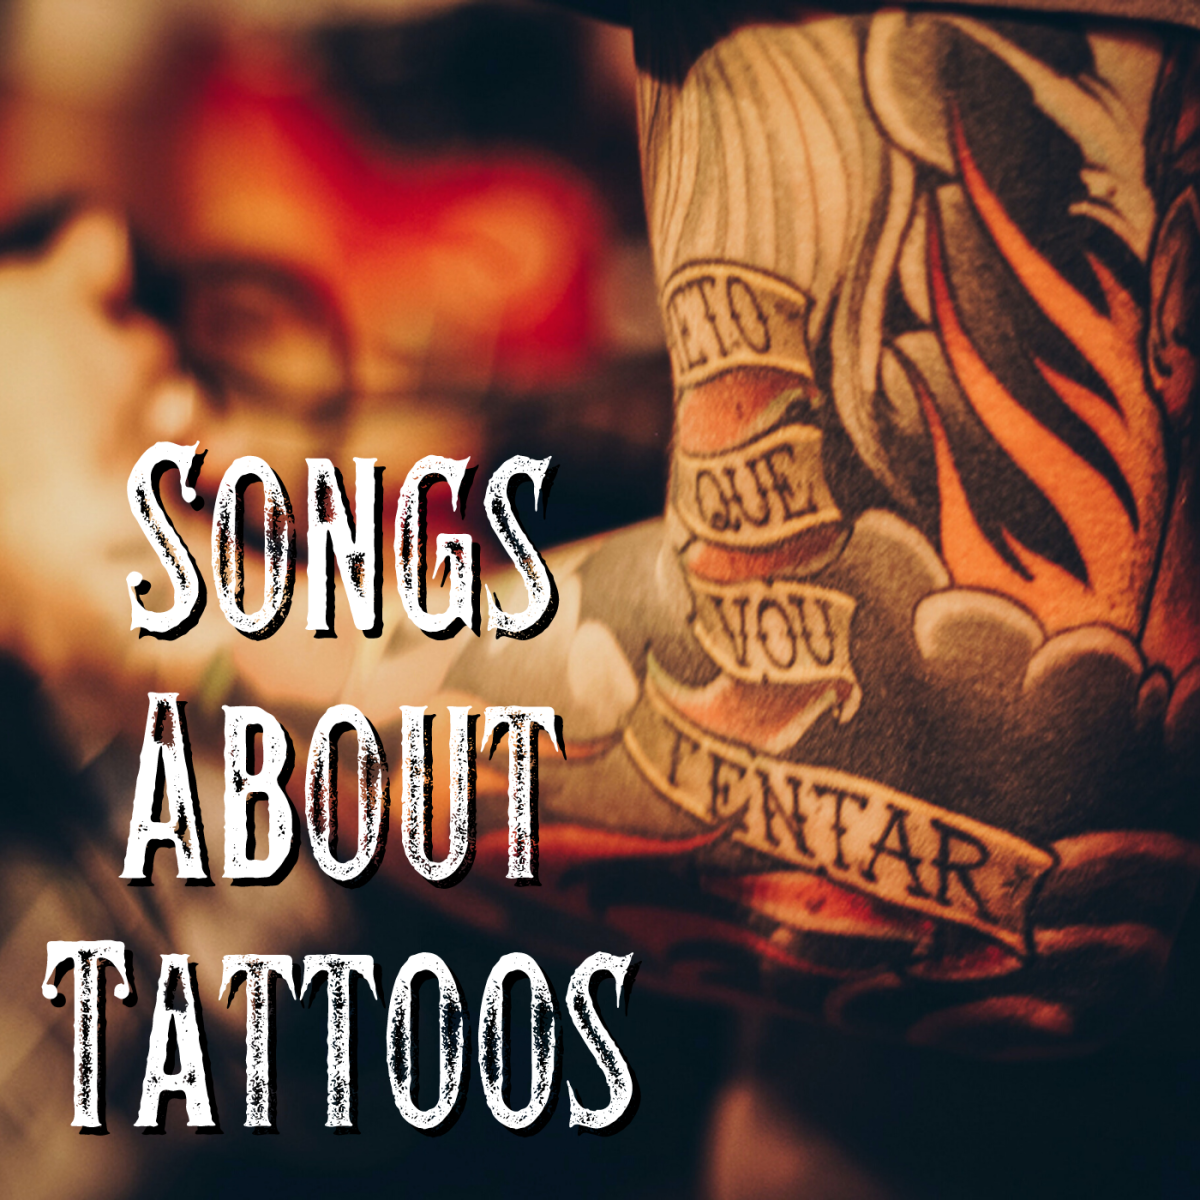 If you're one of the millions of people who see body art as a form of self-expression, then celebrate your body ink with a playlist of pop, rock, country, and R&B songs about tattoos.